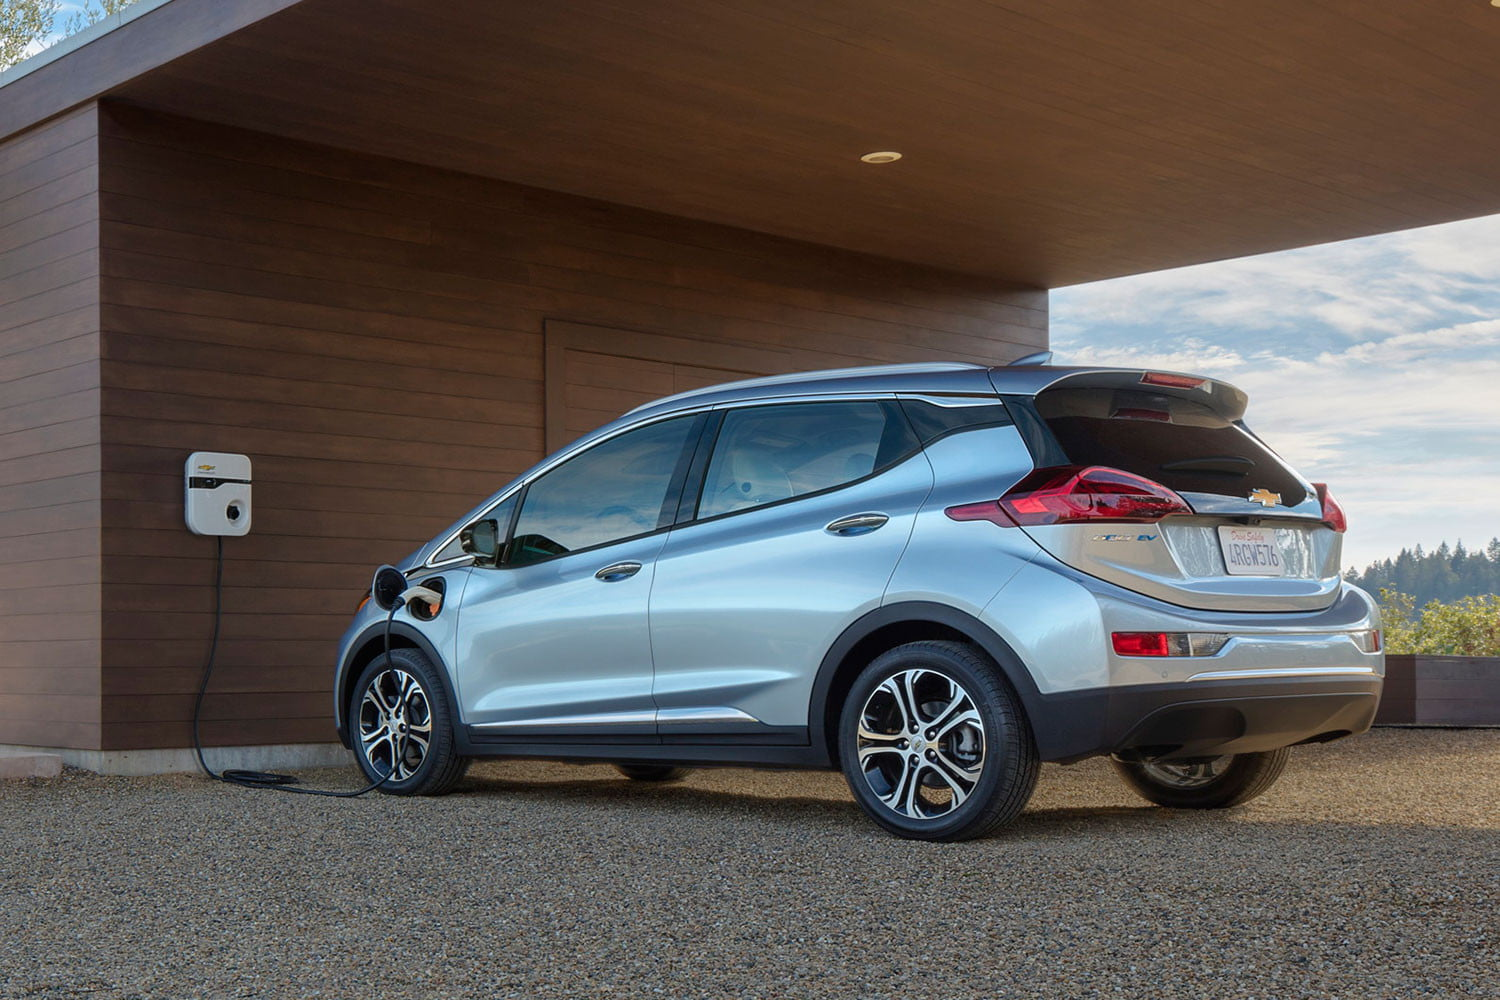 New Lithium Metal Batteries Could Triple The Range Of Evs Digital High Power Car Battery Eliminator Circuitsprojects Chargepoint State Ev Report 2017 Chevrolet Bolt Interview 0017